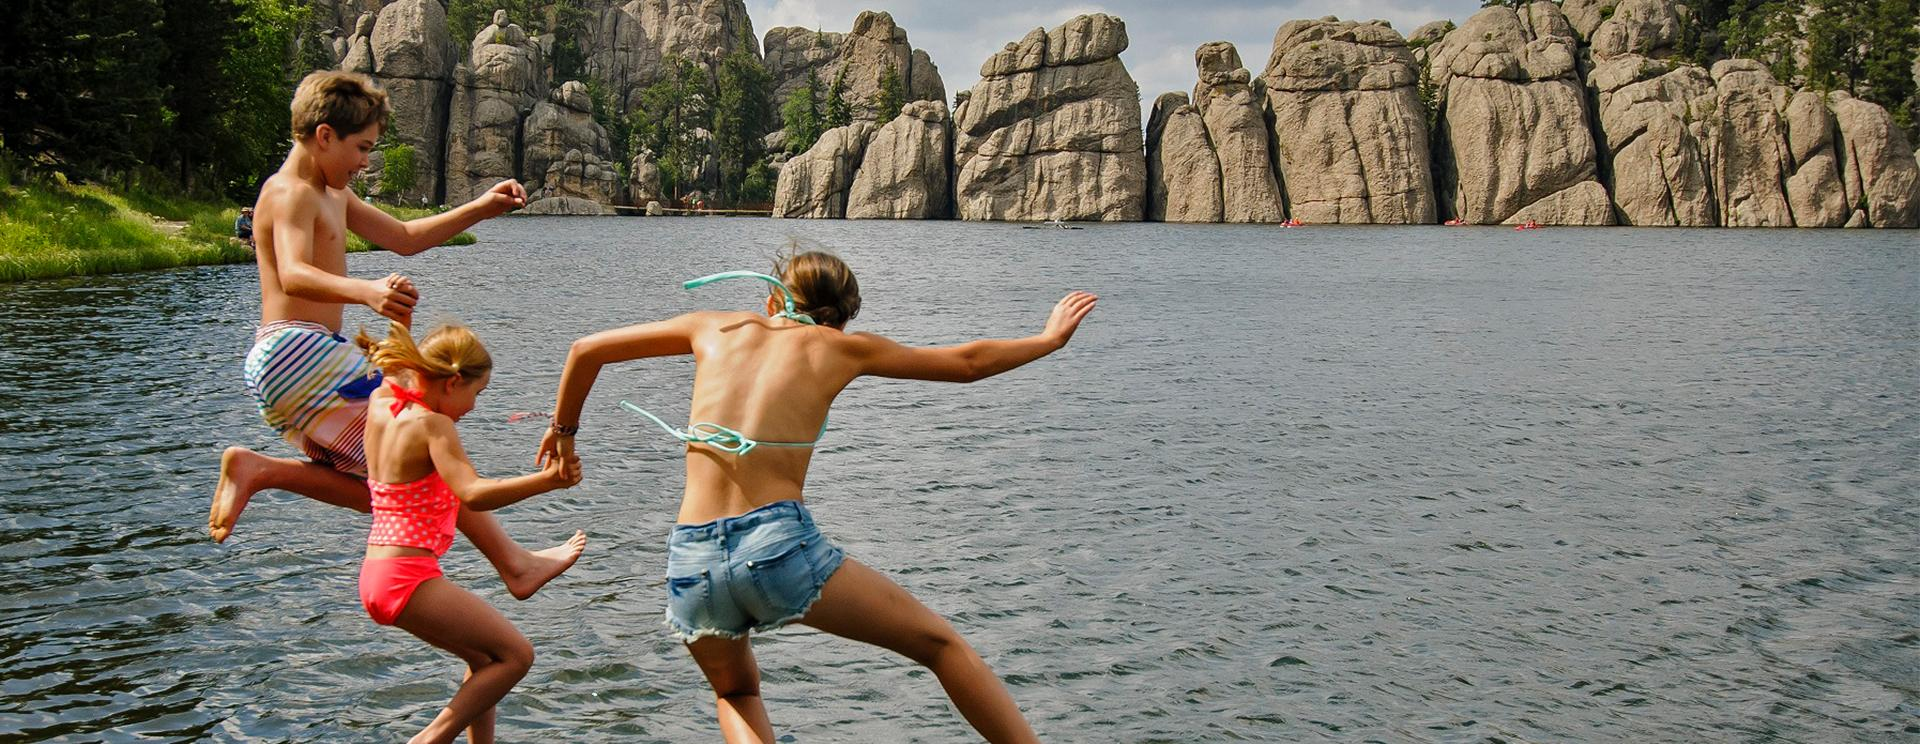 How to Have Your Best Summer Yet at Custer State Park